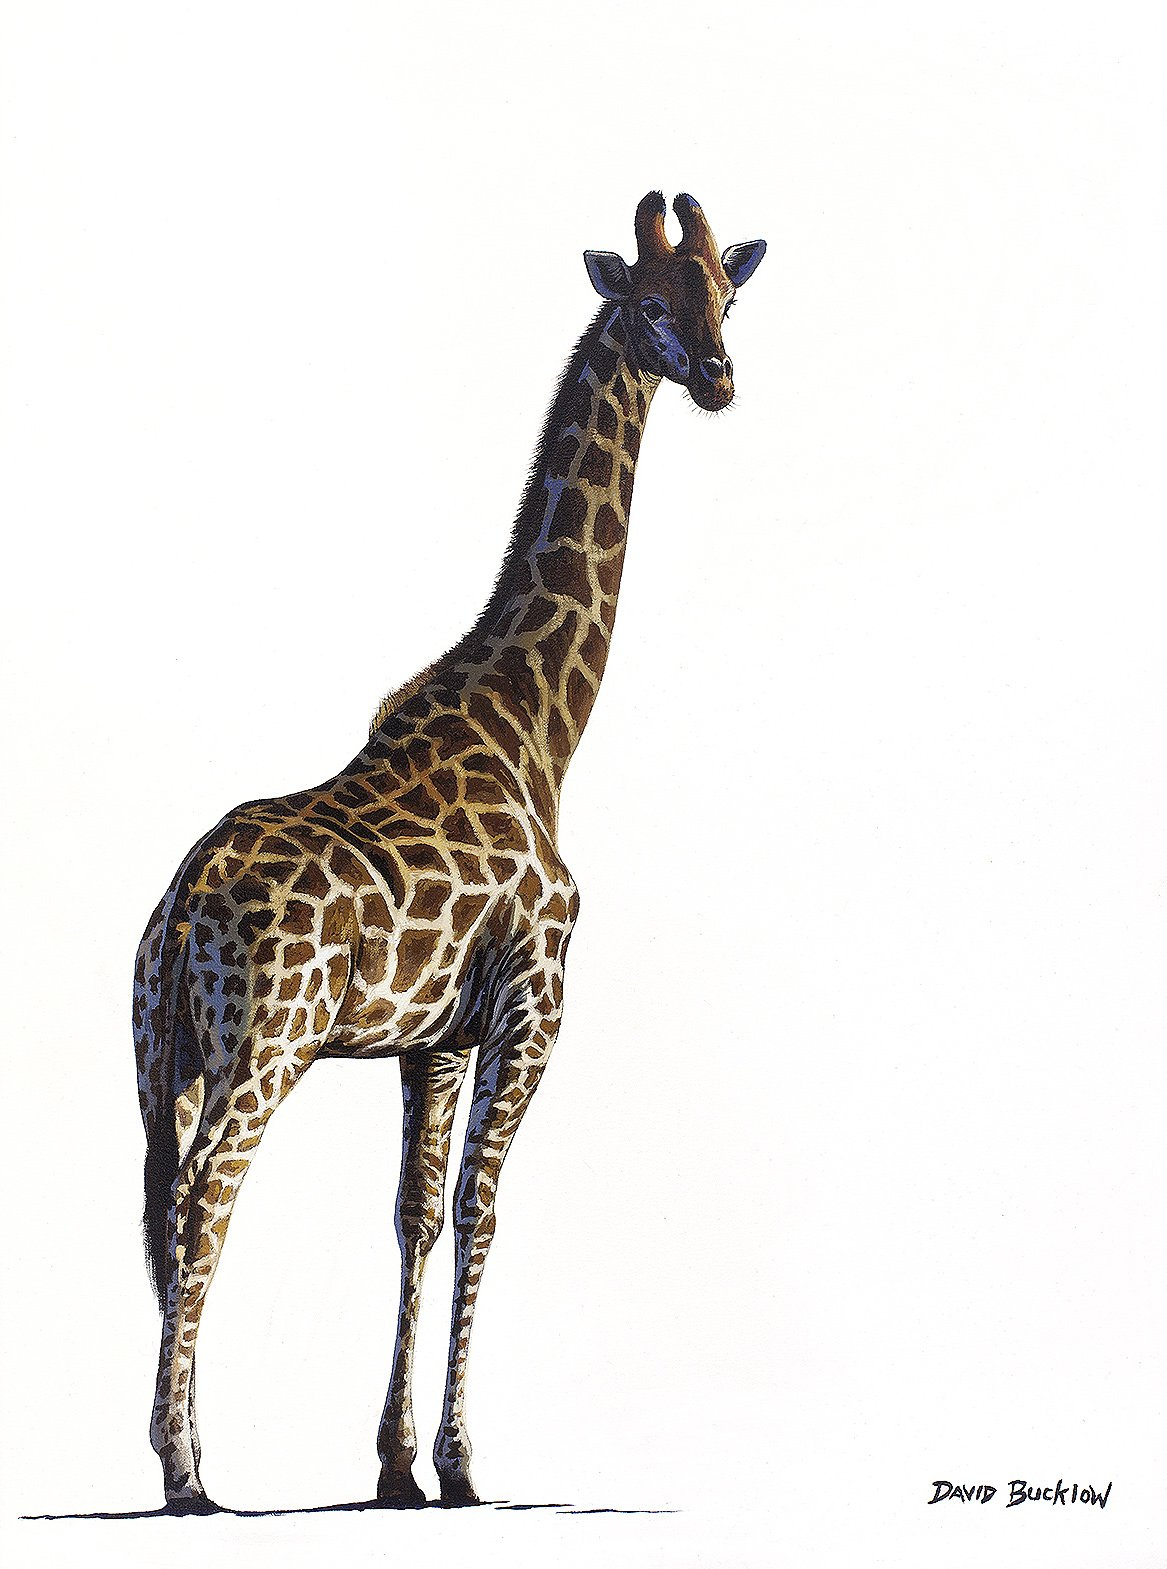 South African Limited Editions by David Bucklow - Standing Tall - Giraffe - Fine Art Portfolio